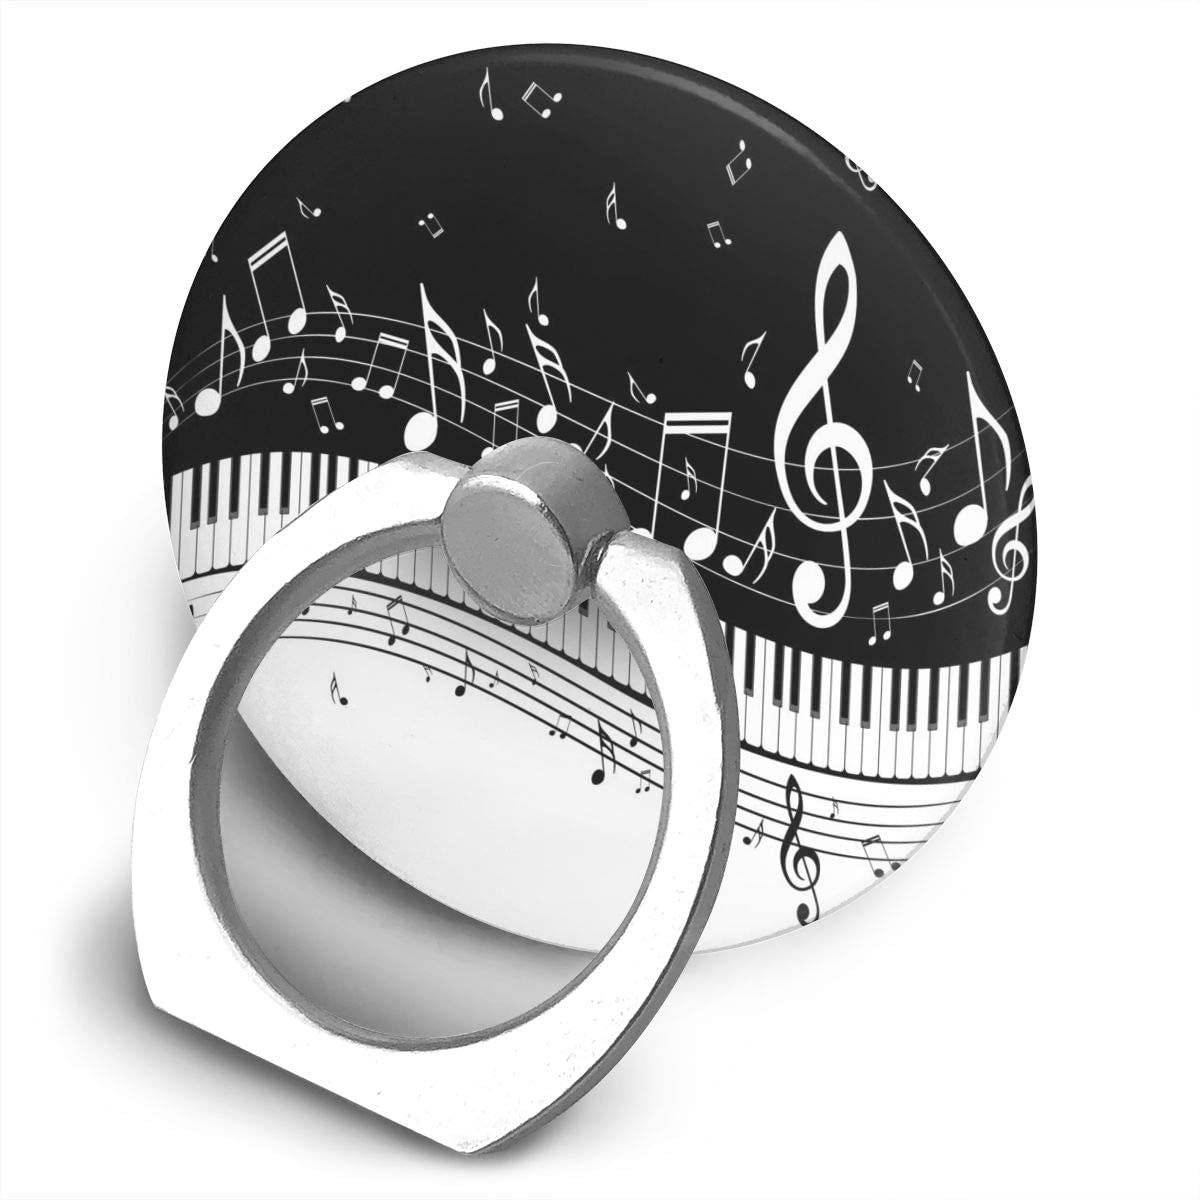 Universal Phone Ring Holder Black Music Piano Notes Adjustable 360°Rotation Round Finger Grip Loop Cell Phone Stand for Phone X/6/6s/7/8/8/10/11 Plus Smartphone Android